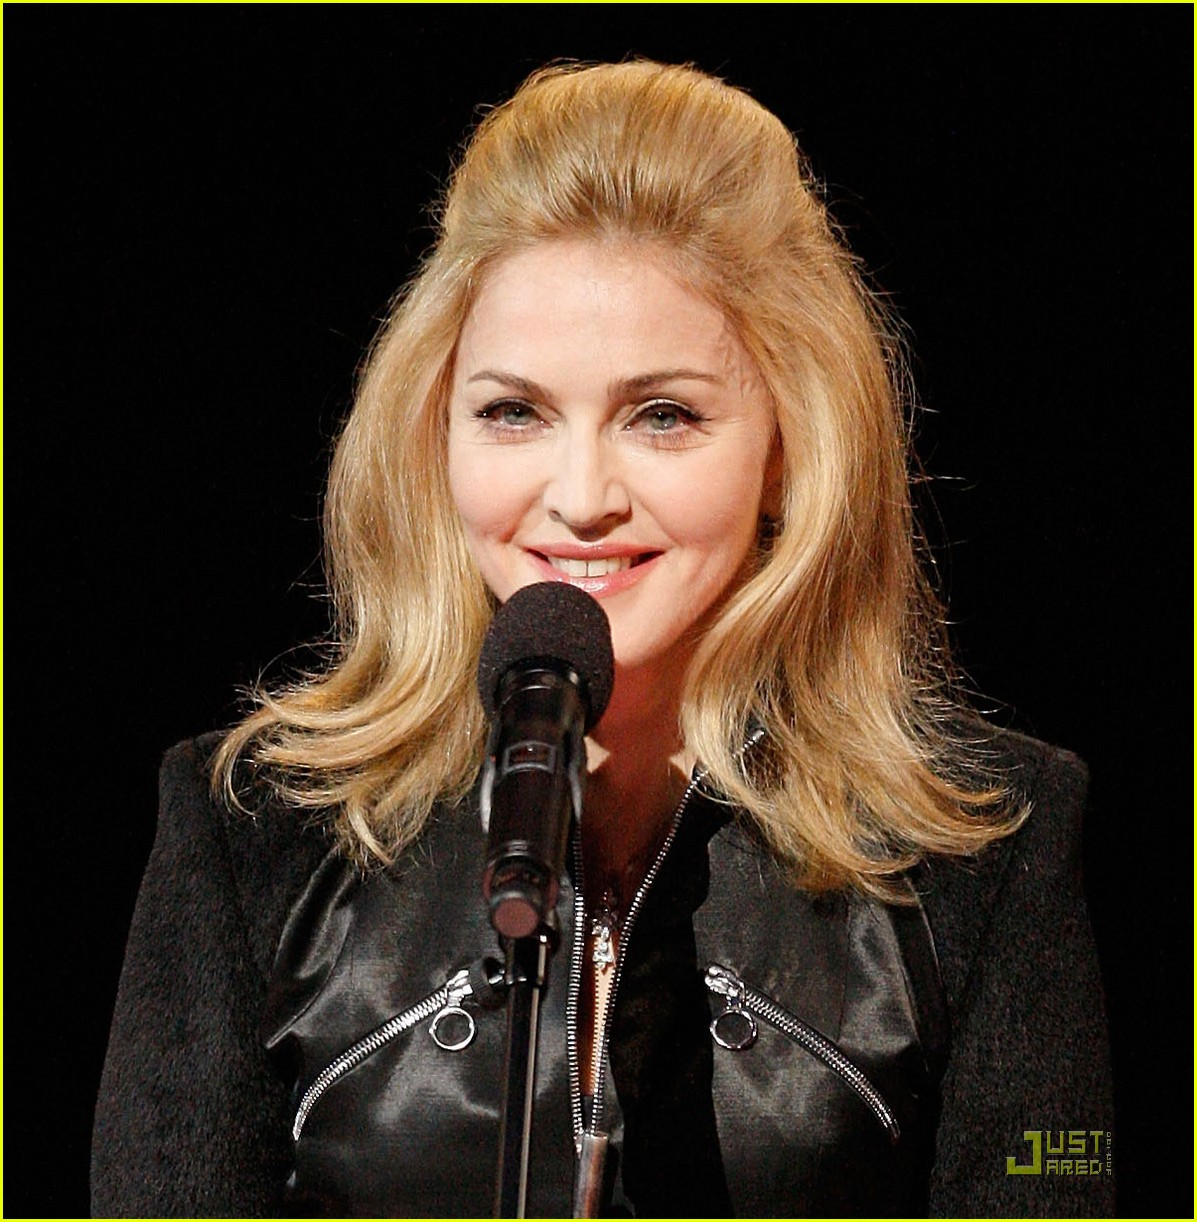 I Was Here.: Madonna